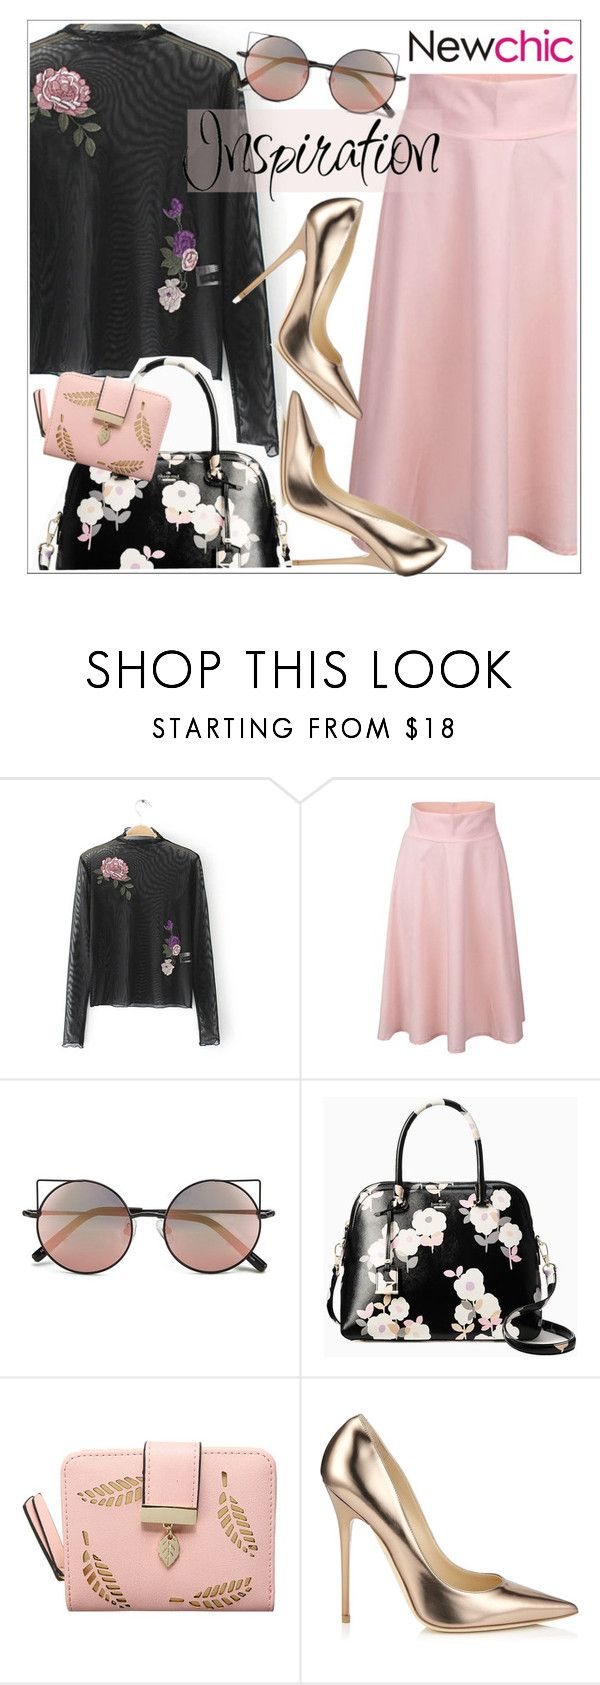 """""""Newchic"""" by teoecar ❤ liked on Polyvore featuring Linda Farrow, Kate Spade and Jimmy Choo"""